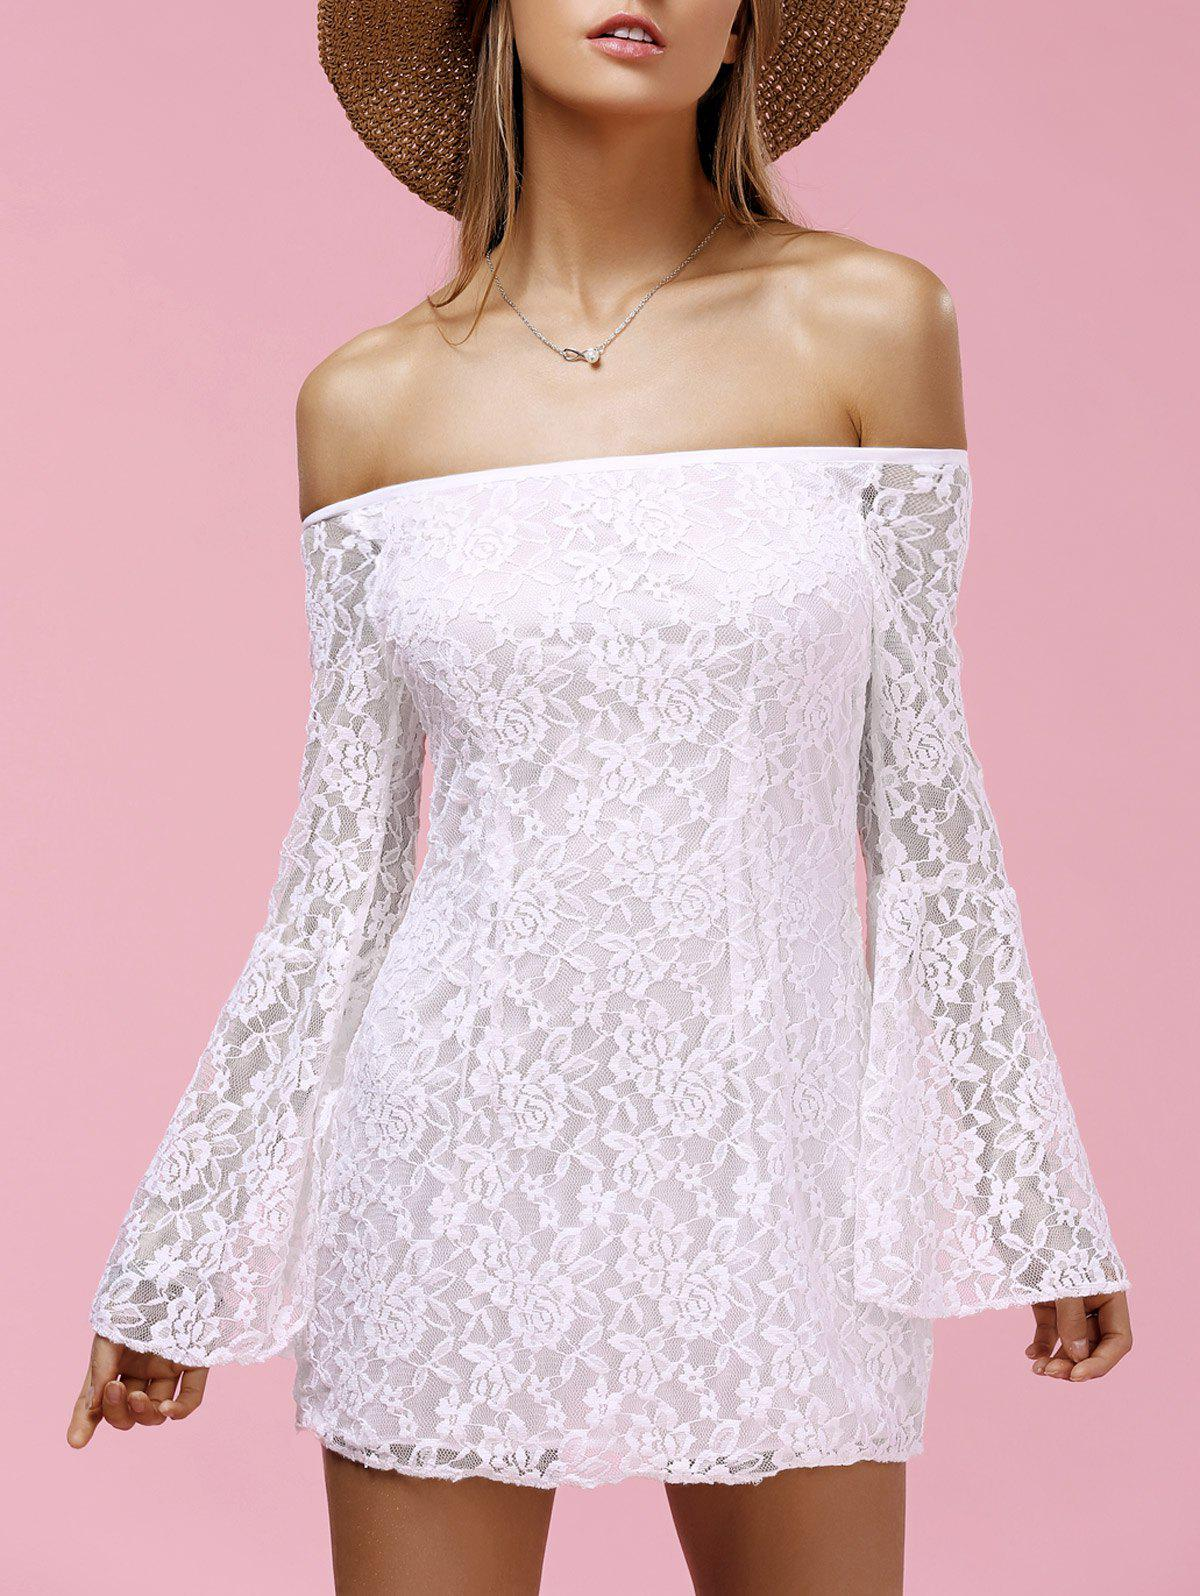 Stylish Women's Off The Shoulder Bell Sleeve Lace Dress - WHITE XL